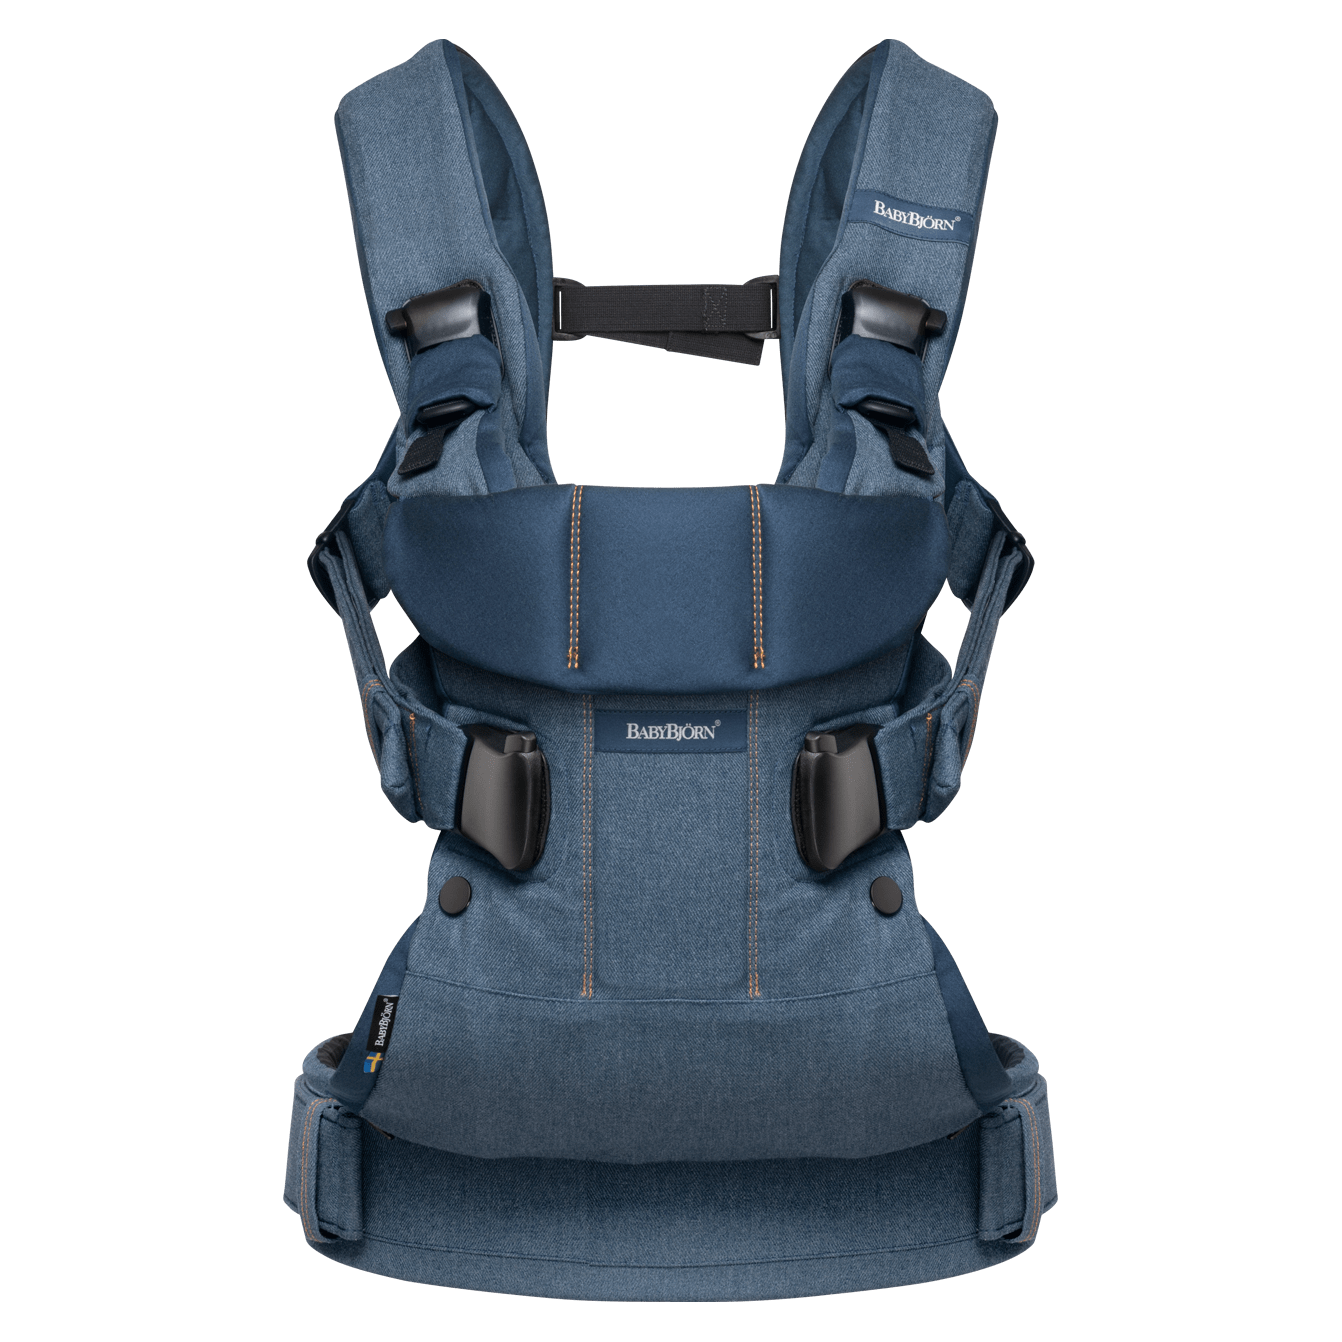 buy ergonomic baby carrier one in babybj rn shop. Black Bedroom Furniture Sets. Home Design Ideas